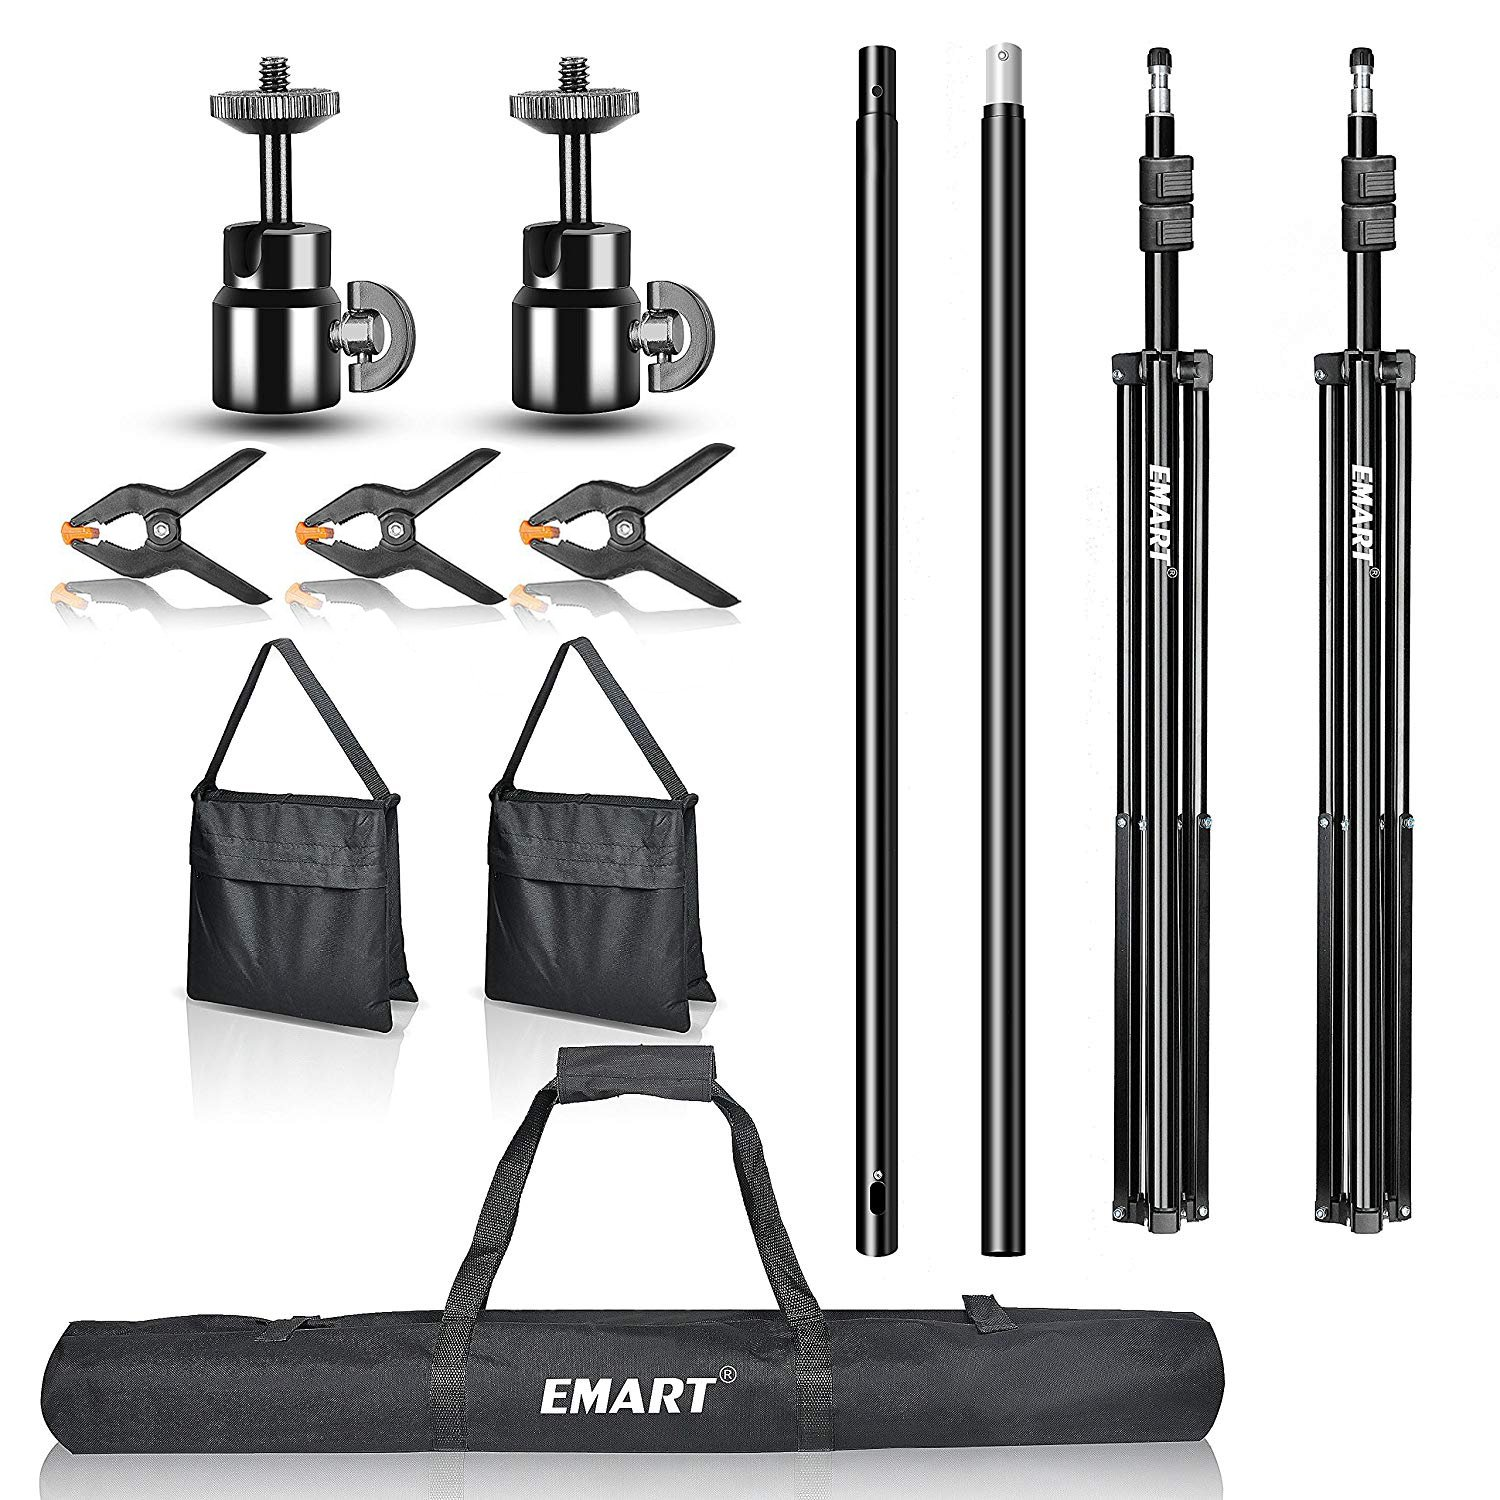 Backdrop Stand, Emart 7x10ft Photo Video Studio Muslin Background Stand Backdrop Support System Kit with Mini Ball Head, Photography Studio by EMART (Image #7)